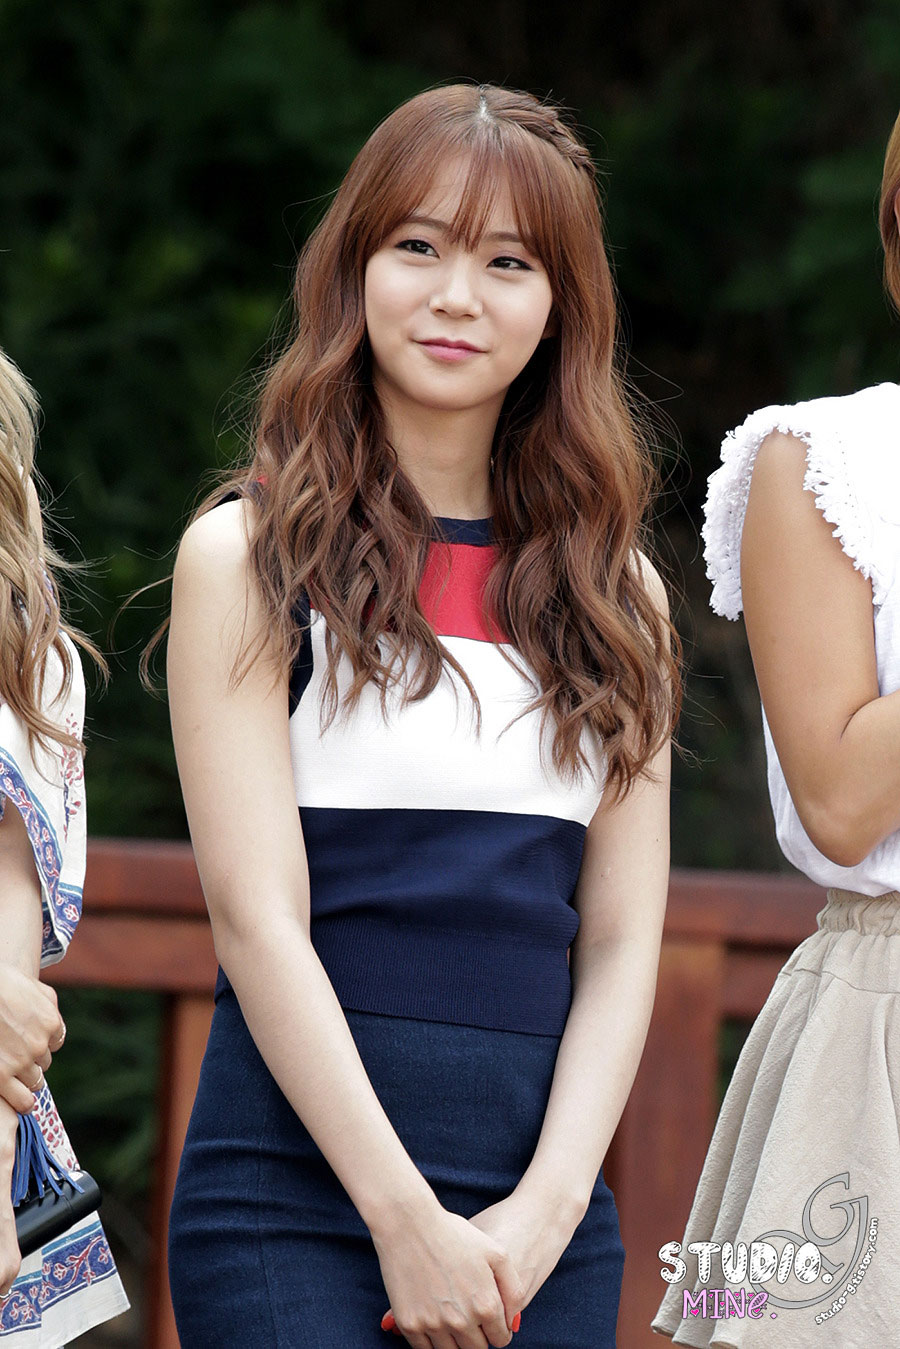 KARA Seungyeon Cupid mini fan meeting event